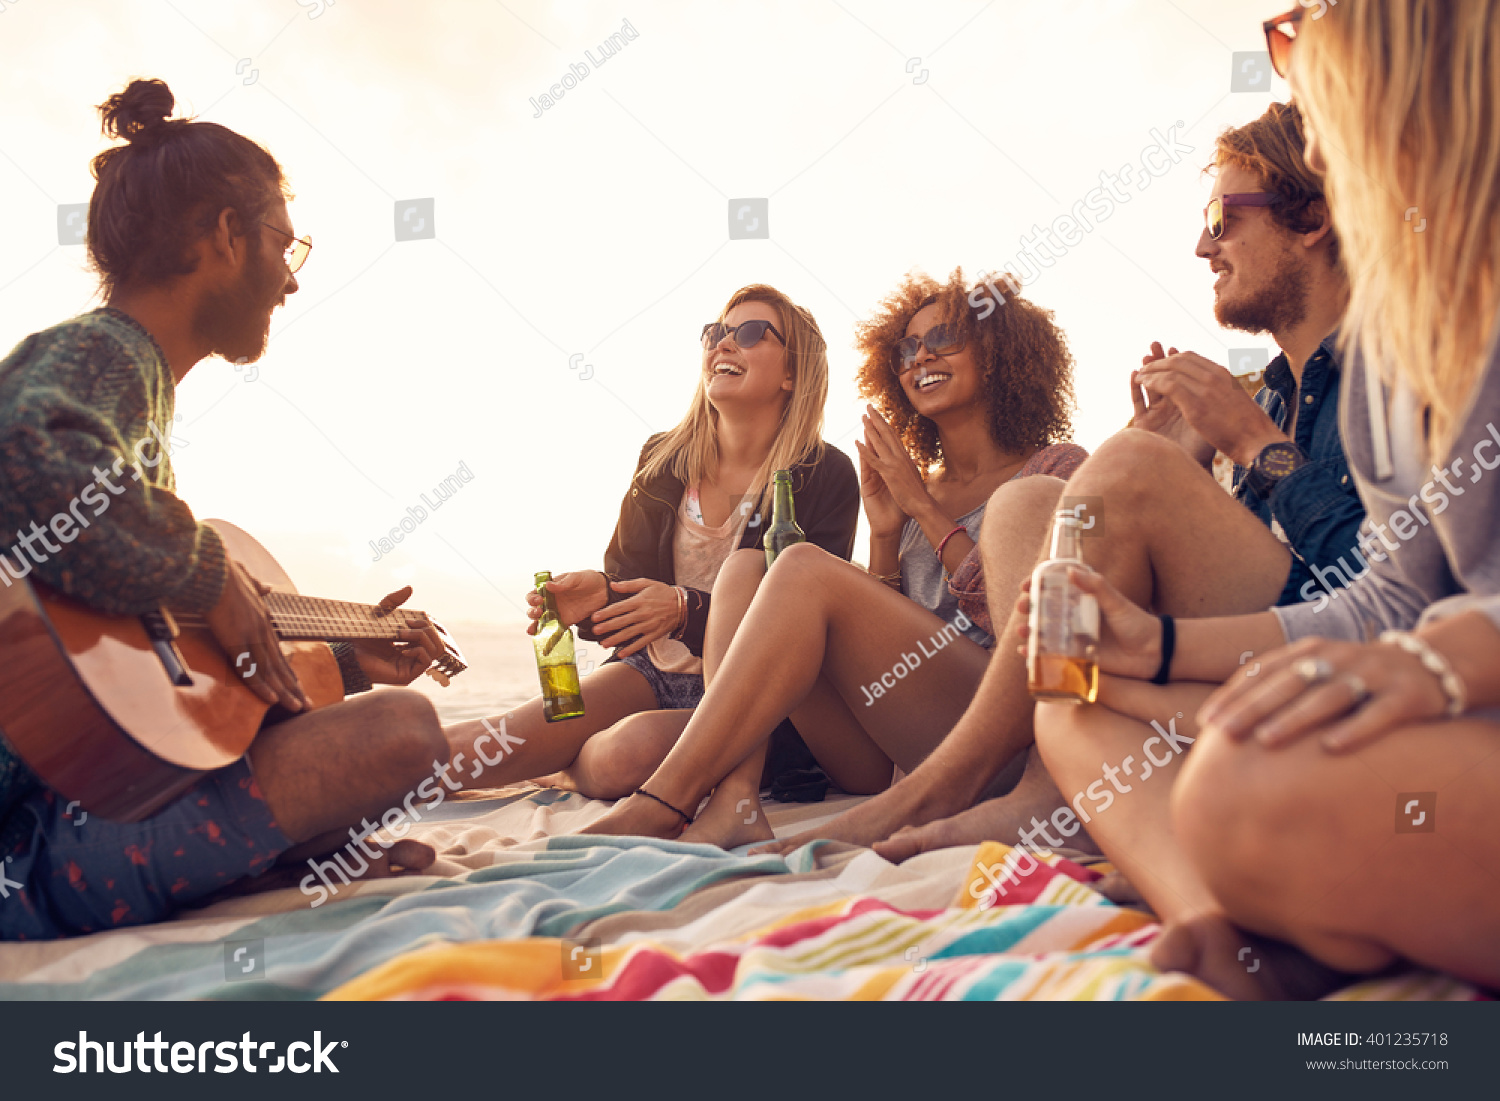 Happy hipsters relaxing and playing guitar at the beach Friends drinking beers and listening to music Having fun at beach party in evening